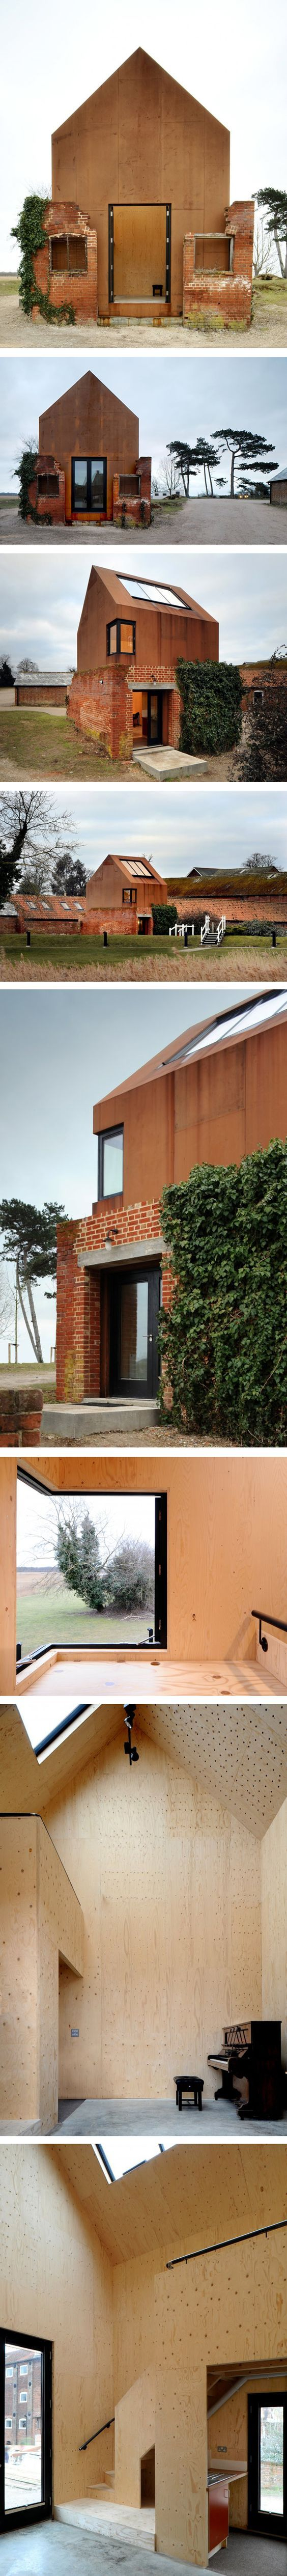 The Dovecote Studio: